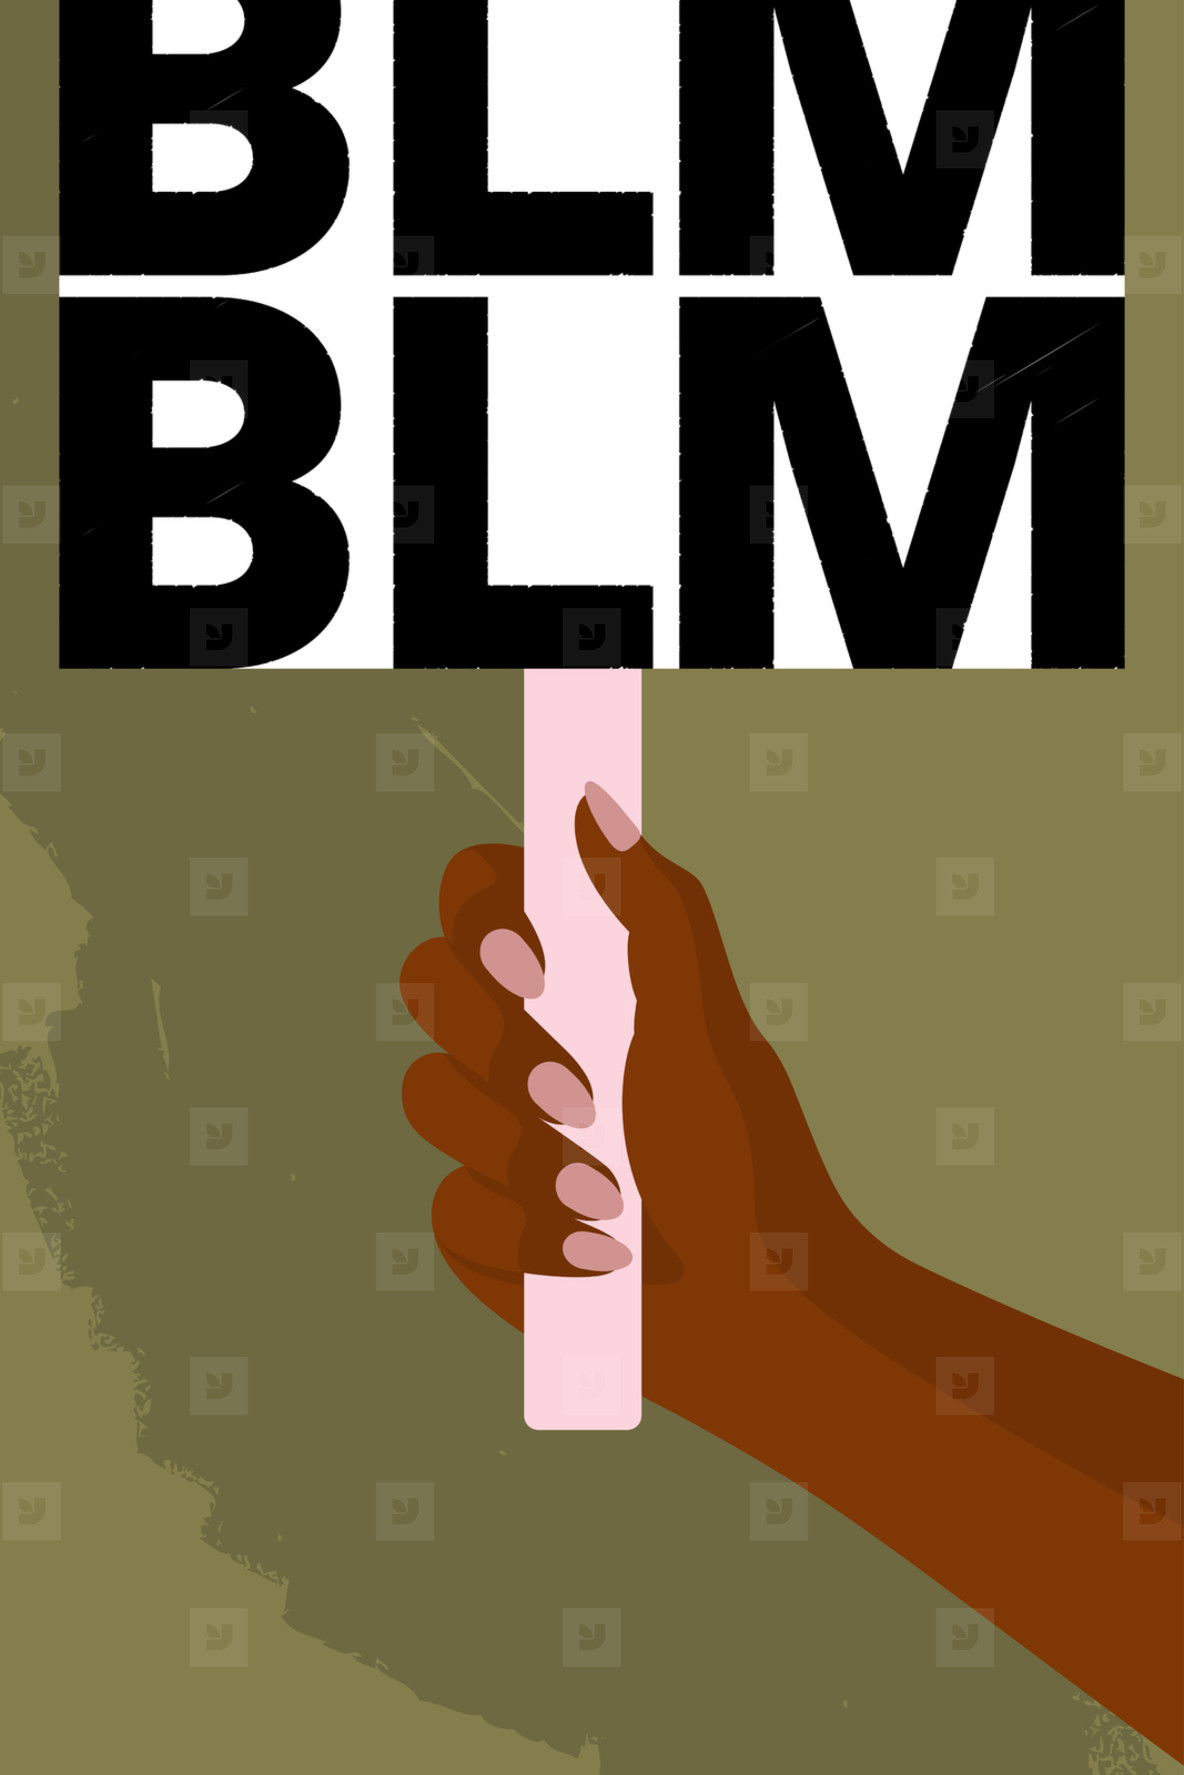 Protester holding BLM sign